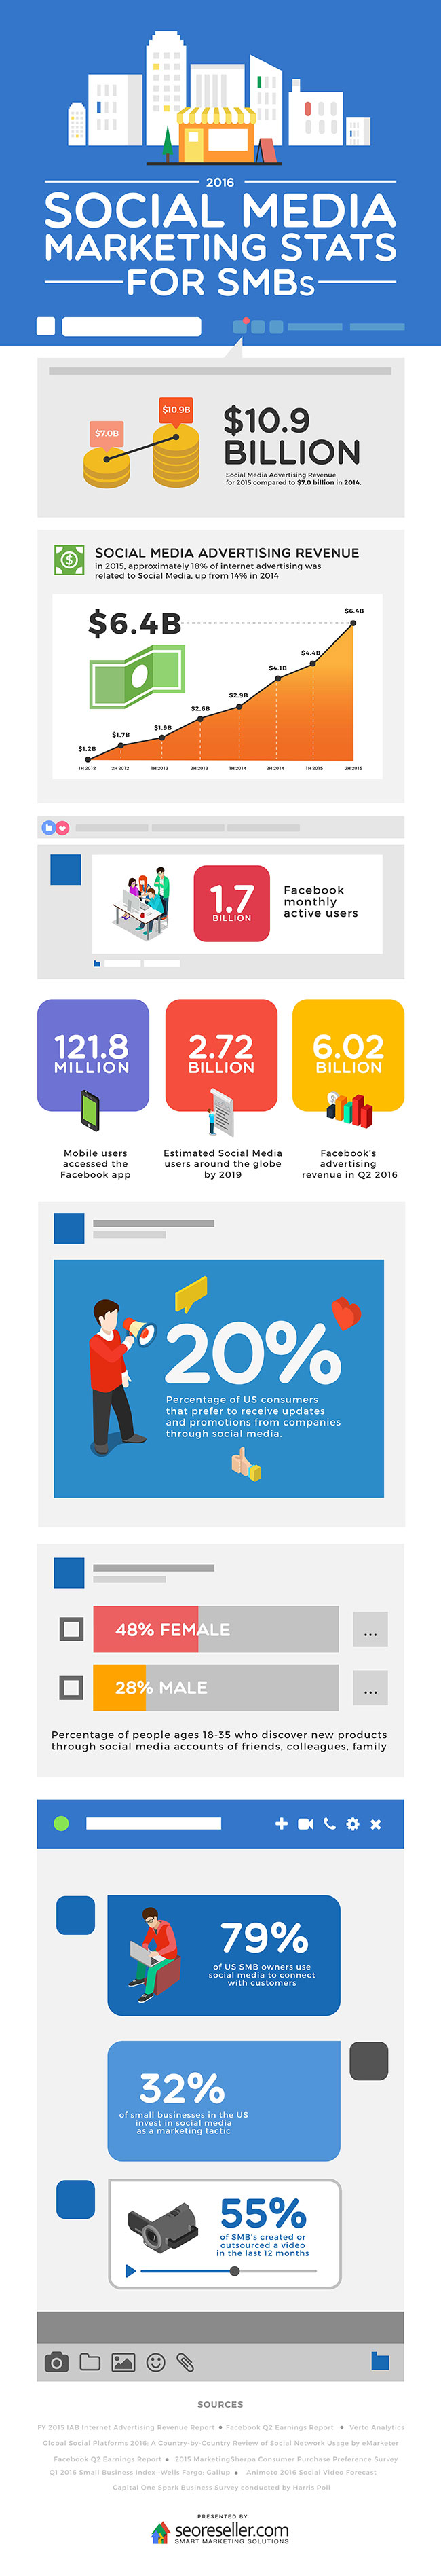 infographie-308-social-media-smbs-2016